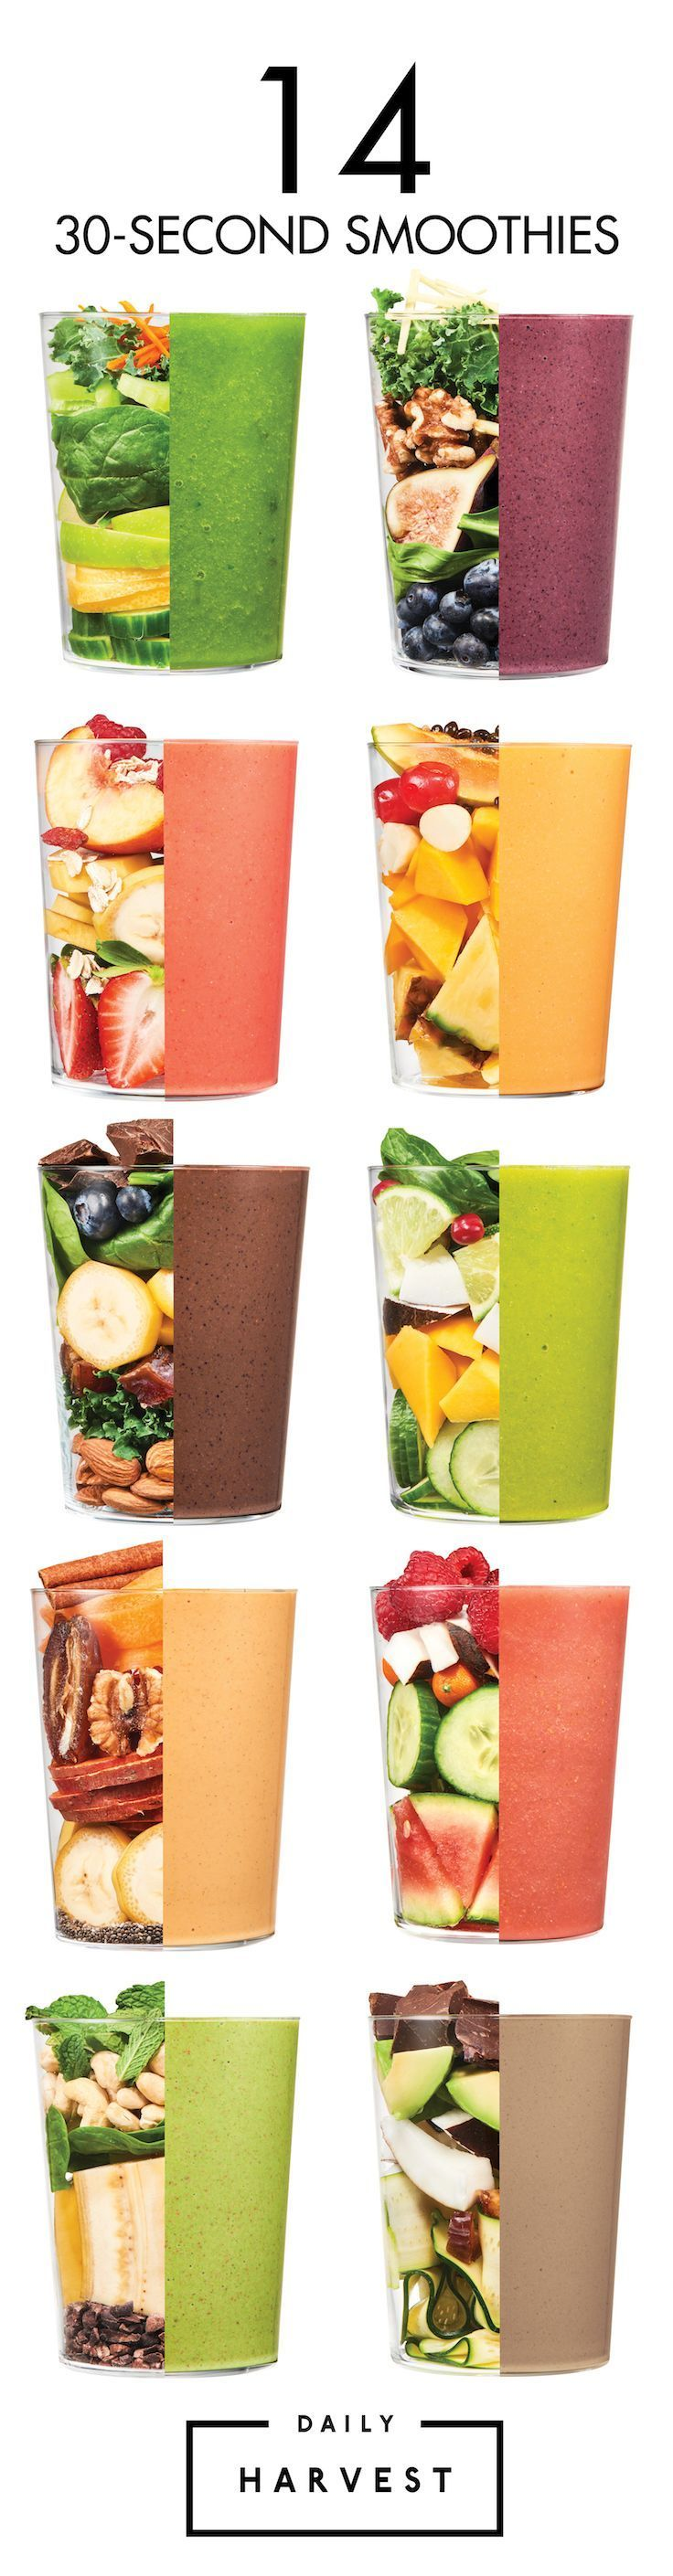 Want delicious, healthy smoothies without all the fuss? Daily Harvest delivers frozen pre-packaged smoothies straight to your door - all you have to do is blend and enjoy. Available in 14 yummy flavors, each one packed to the brim with superfoods. Flexible delivery plans + FREE SHIPPING. #followback #vitaminC #vitaminD